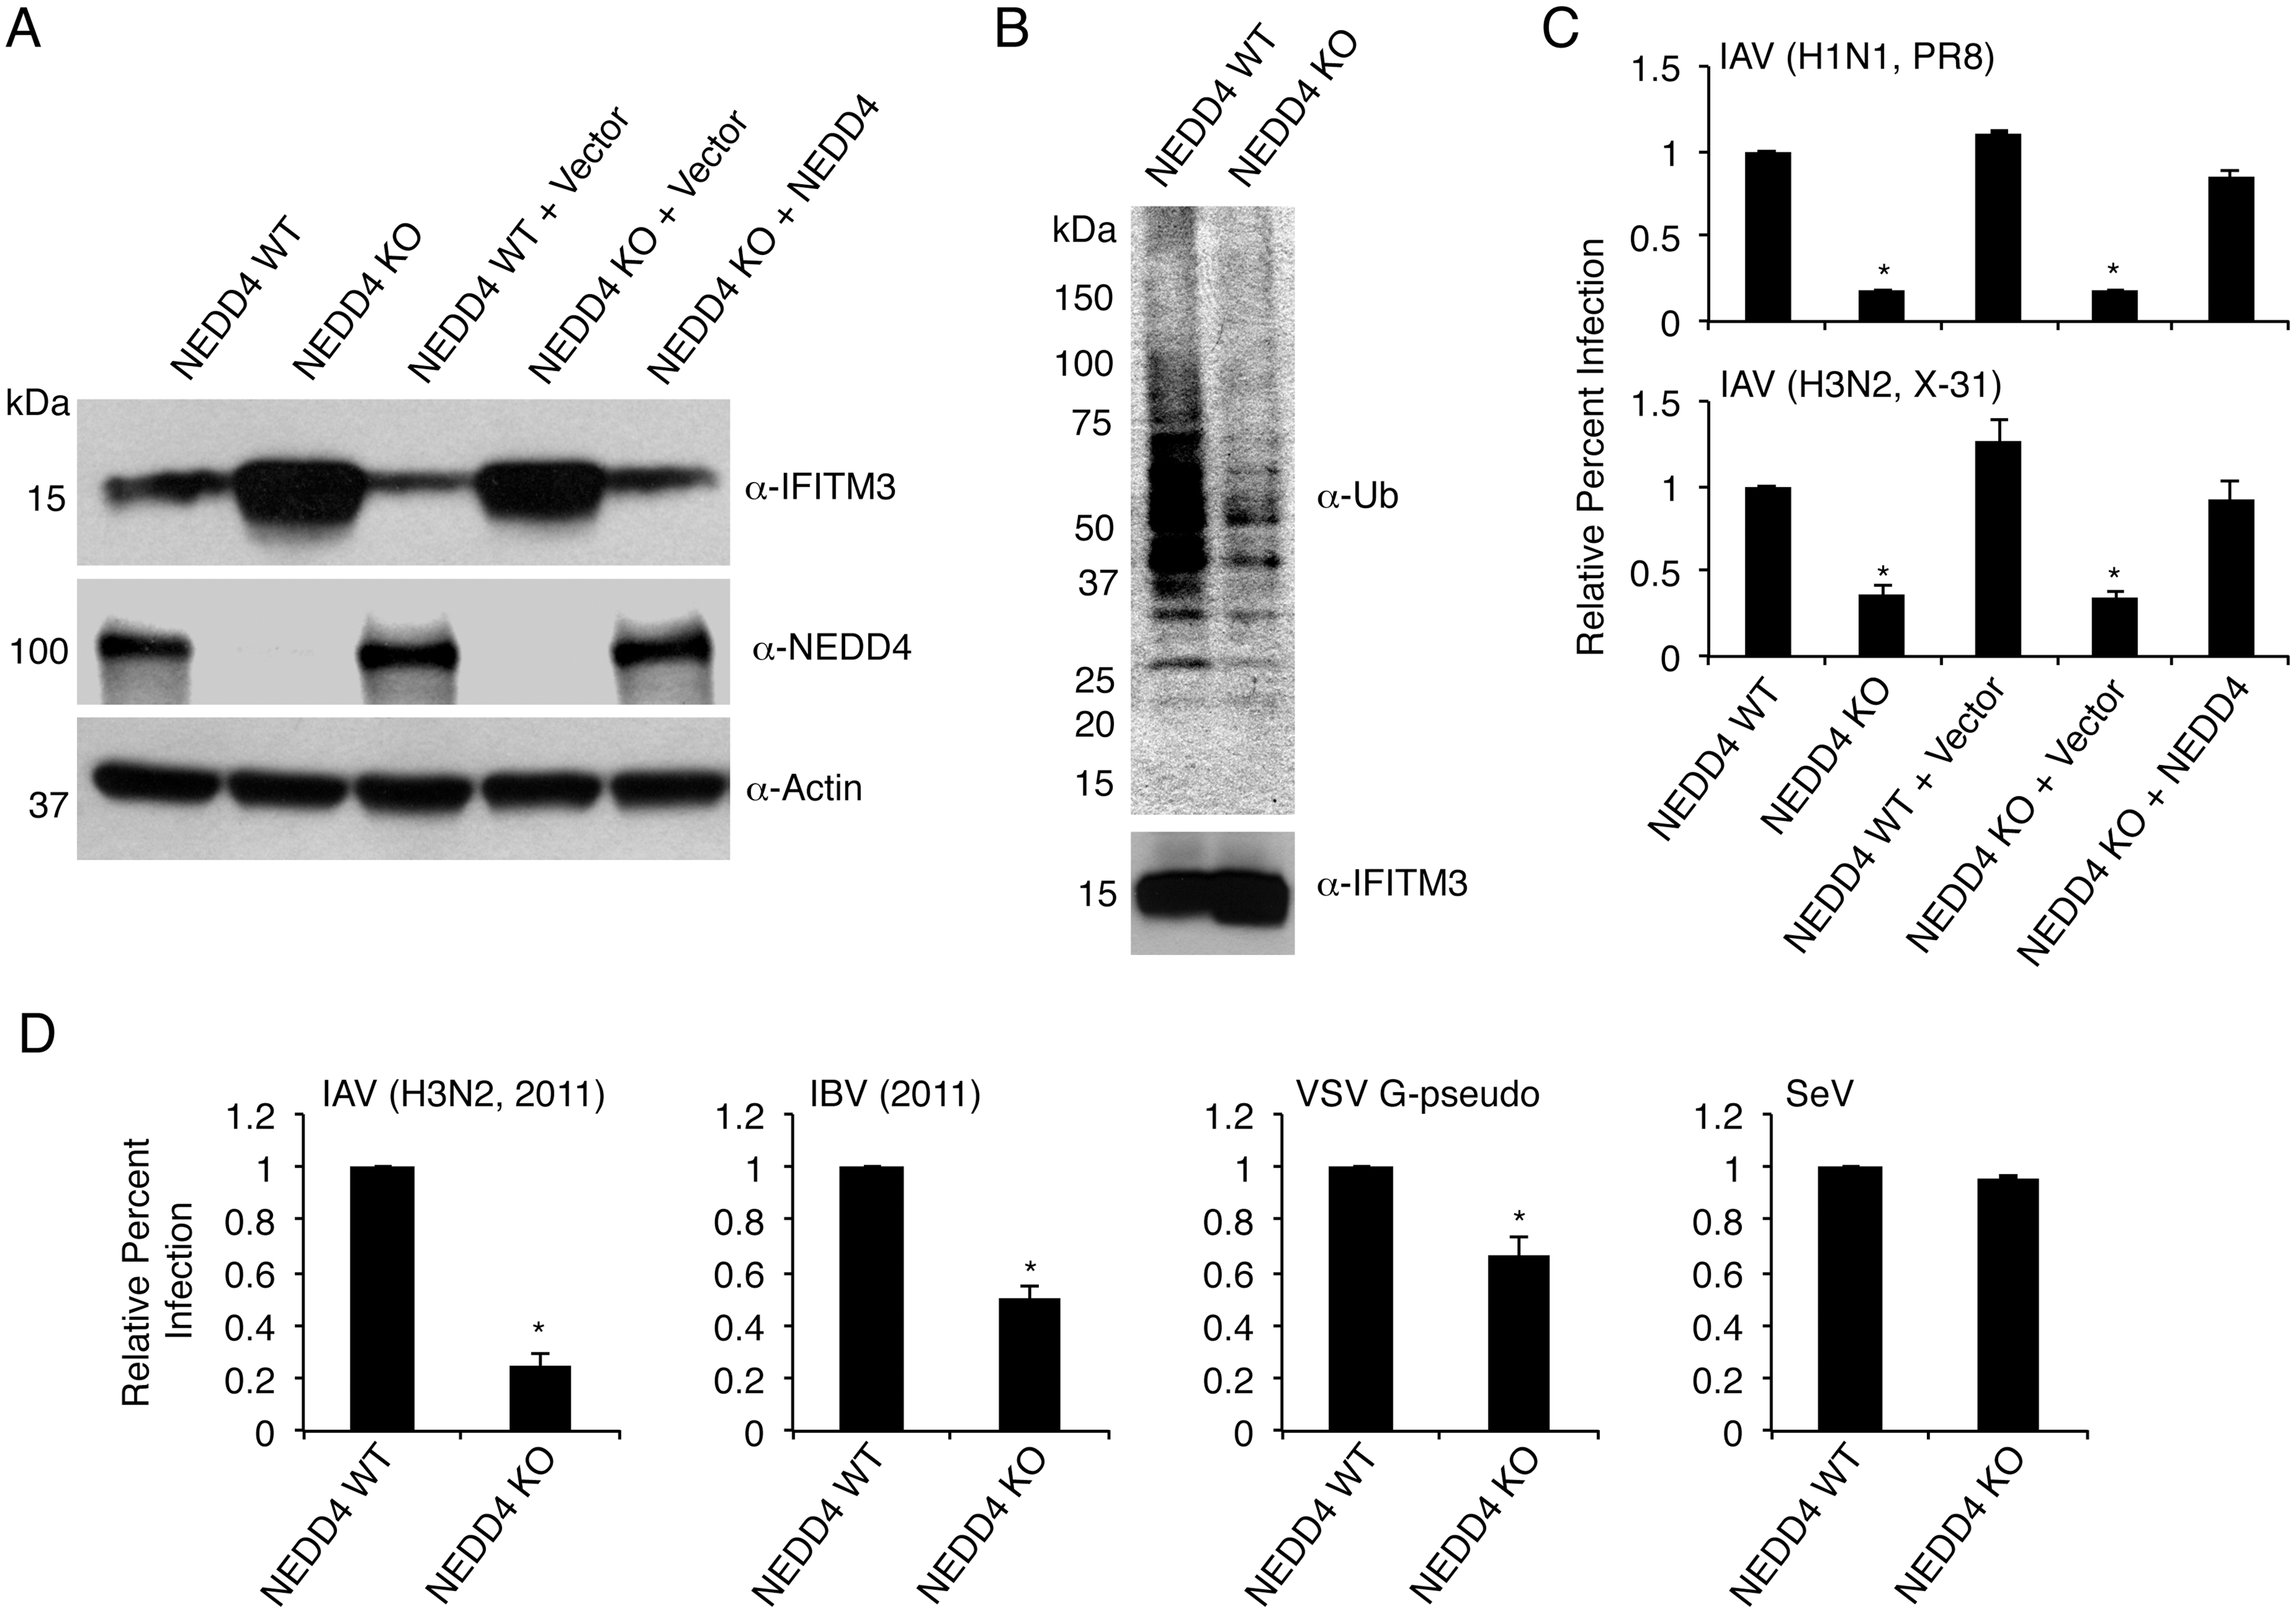 NEDD4 knockout decreases IFITM3 ubiquitination and protects cells from virus infection.